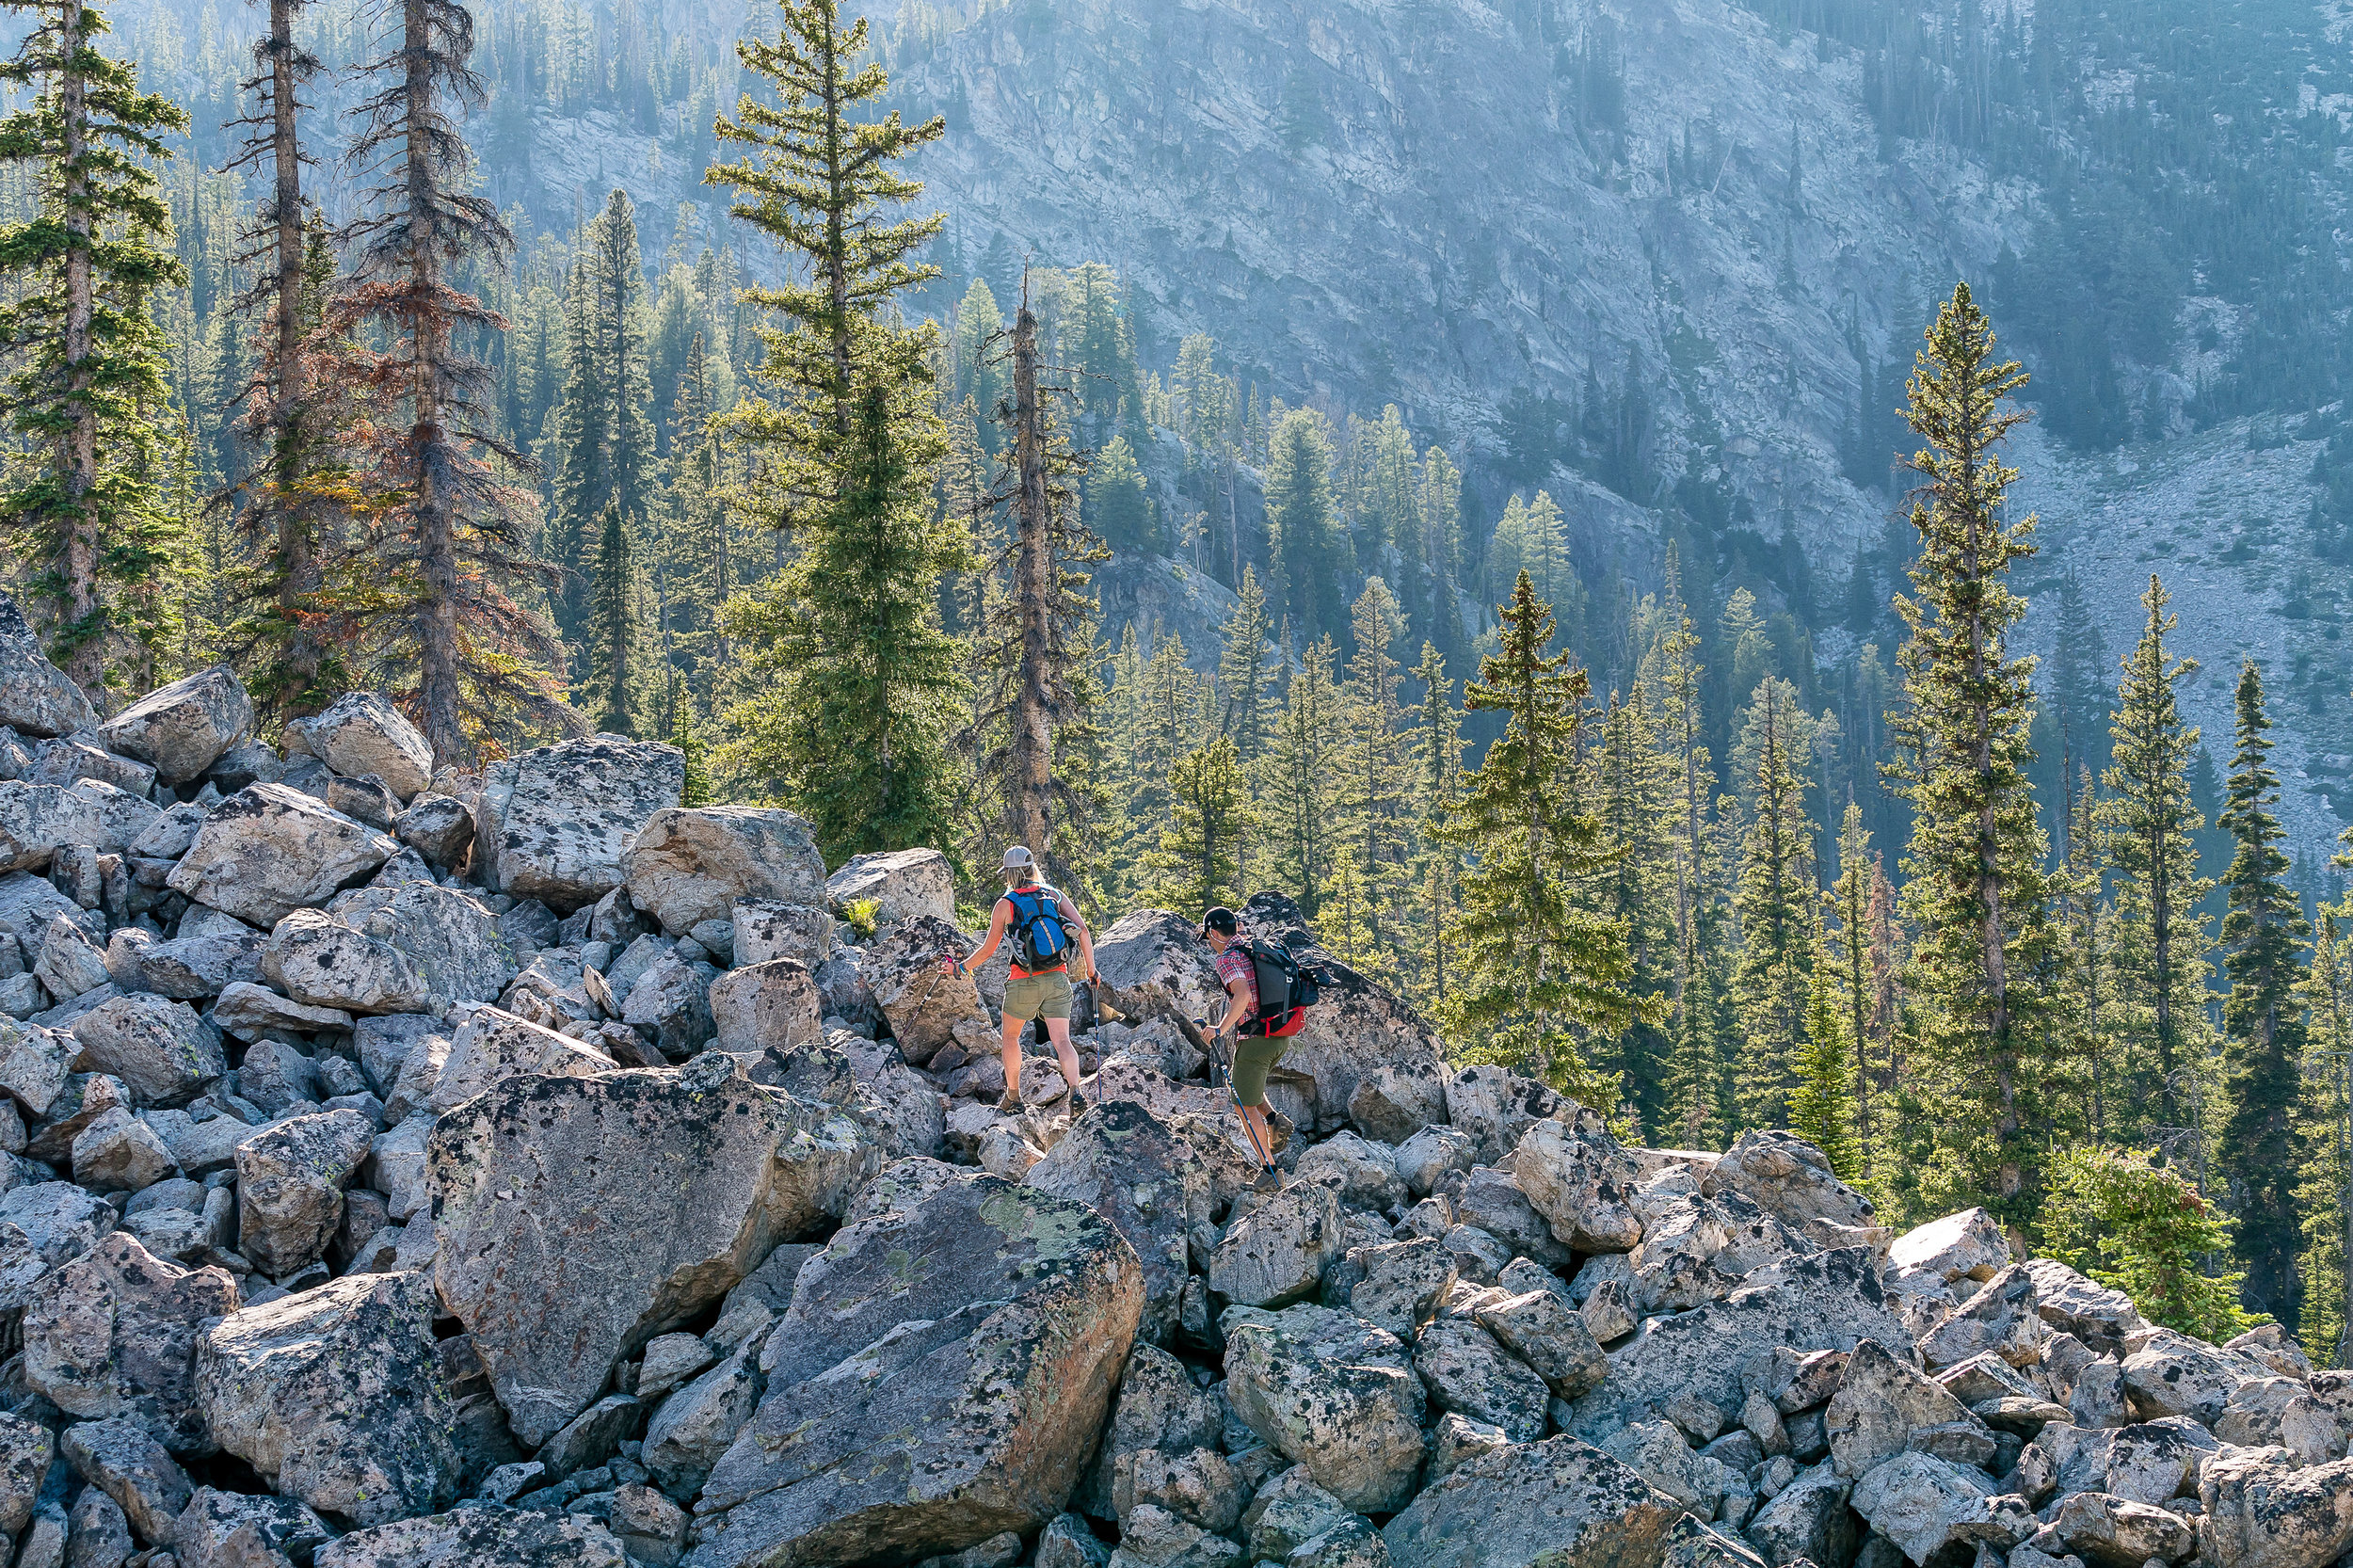 matera_outdoor_lifestyle_Idaho_Ketchum_hiking_DSC3650.jpg